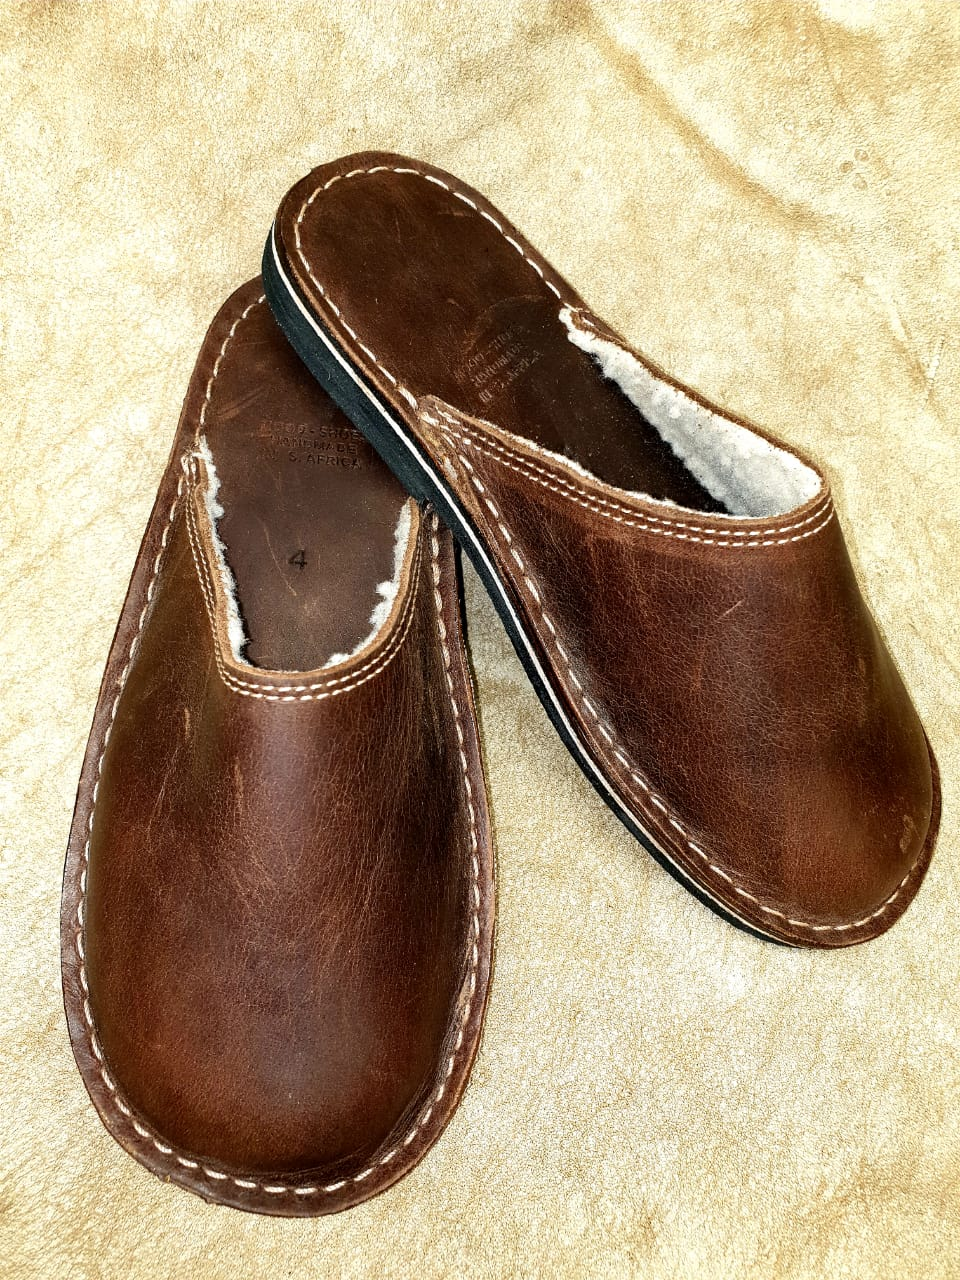 l28a--bed-slipperbrown-or-black